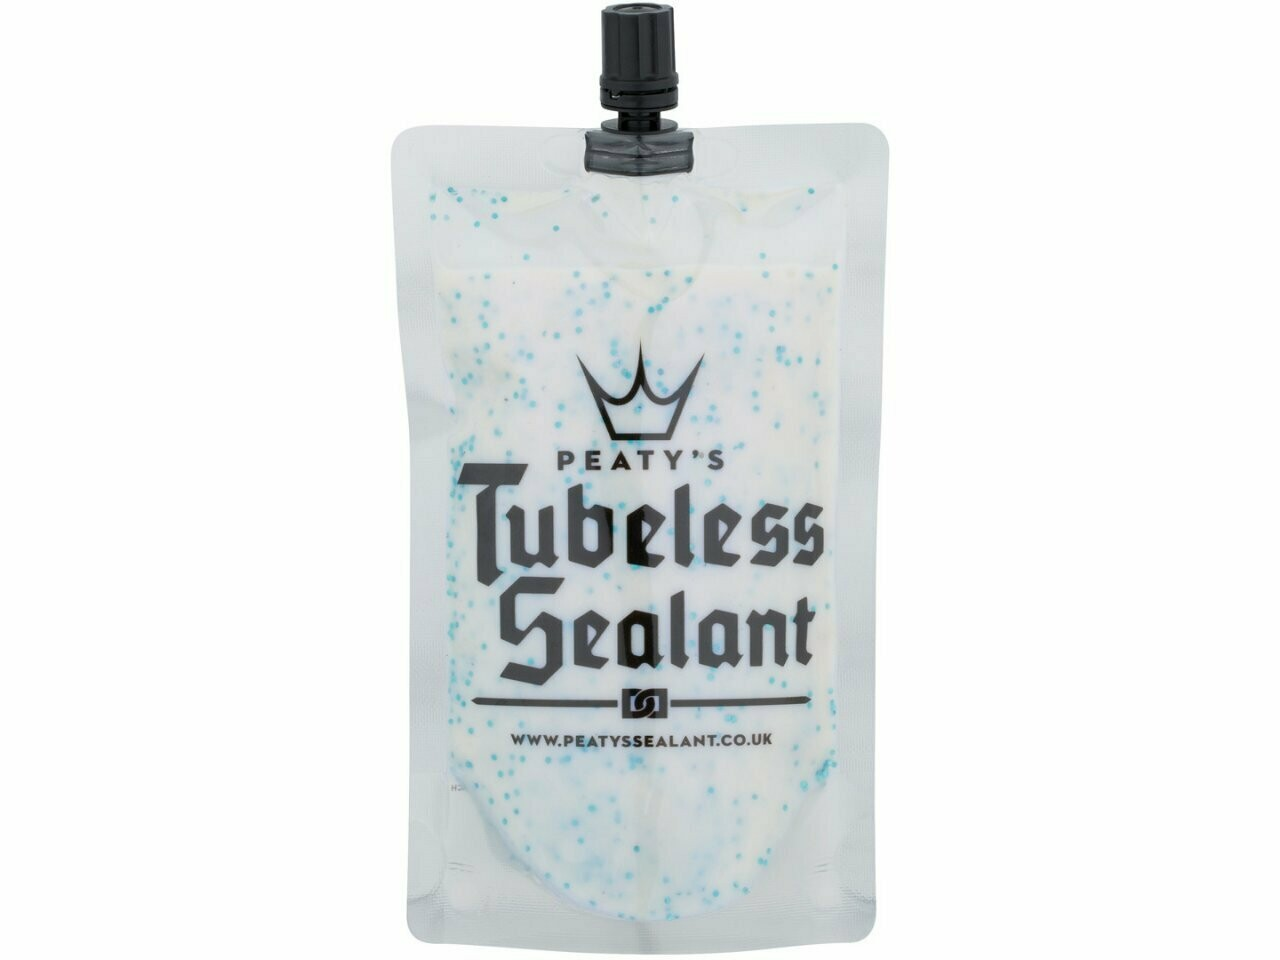 PEATYS TUBELESS SEALANT